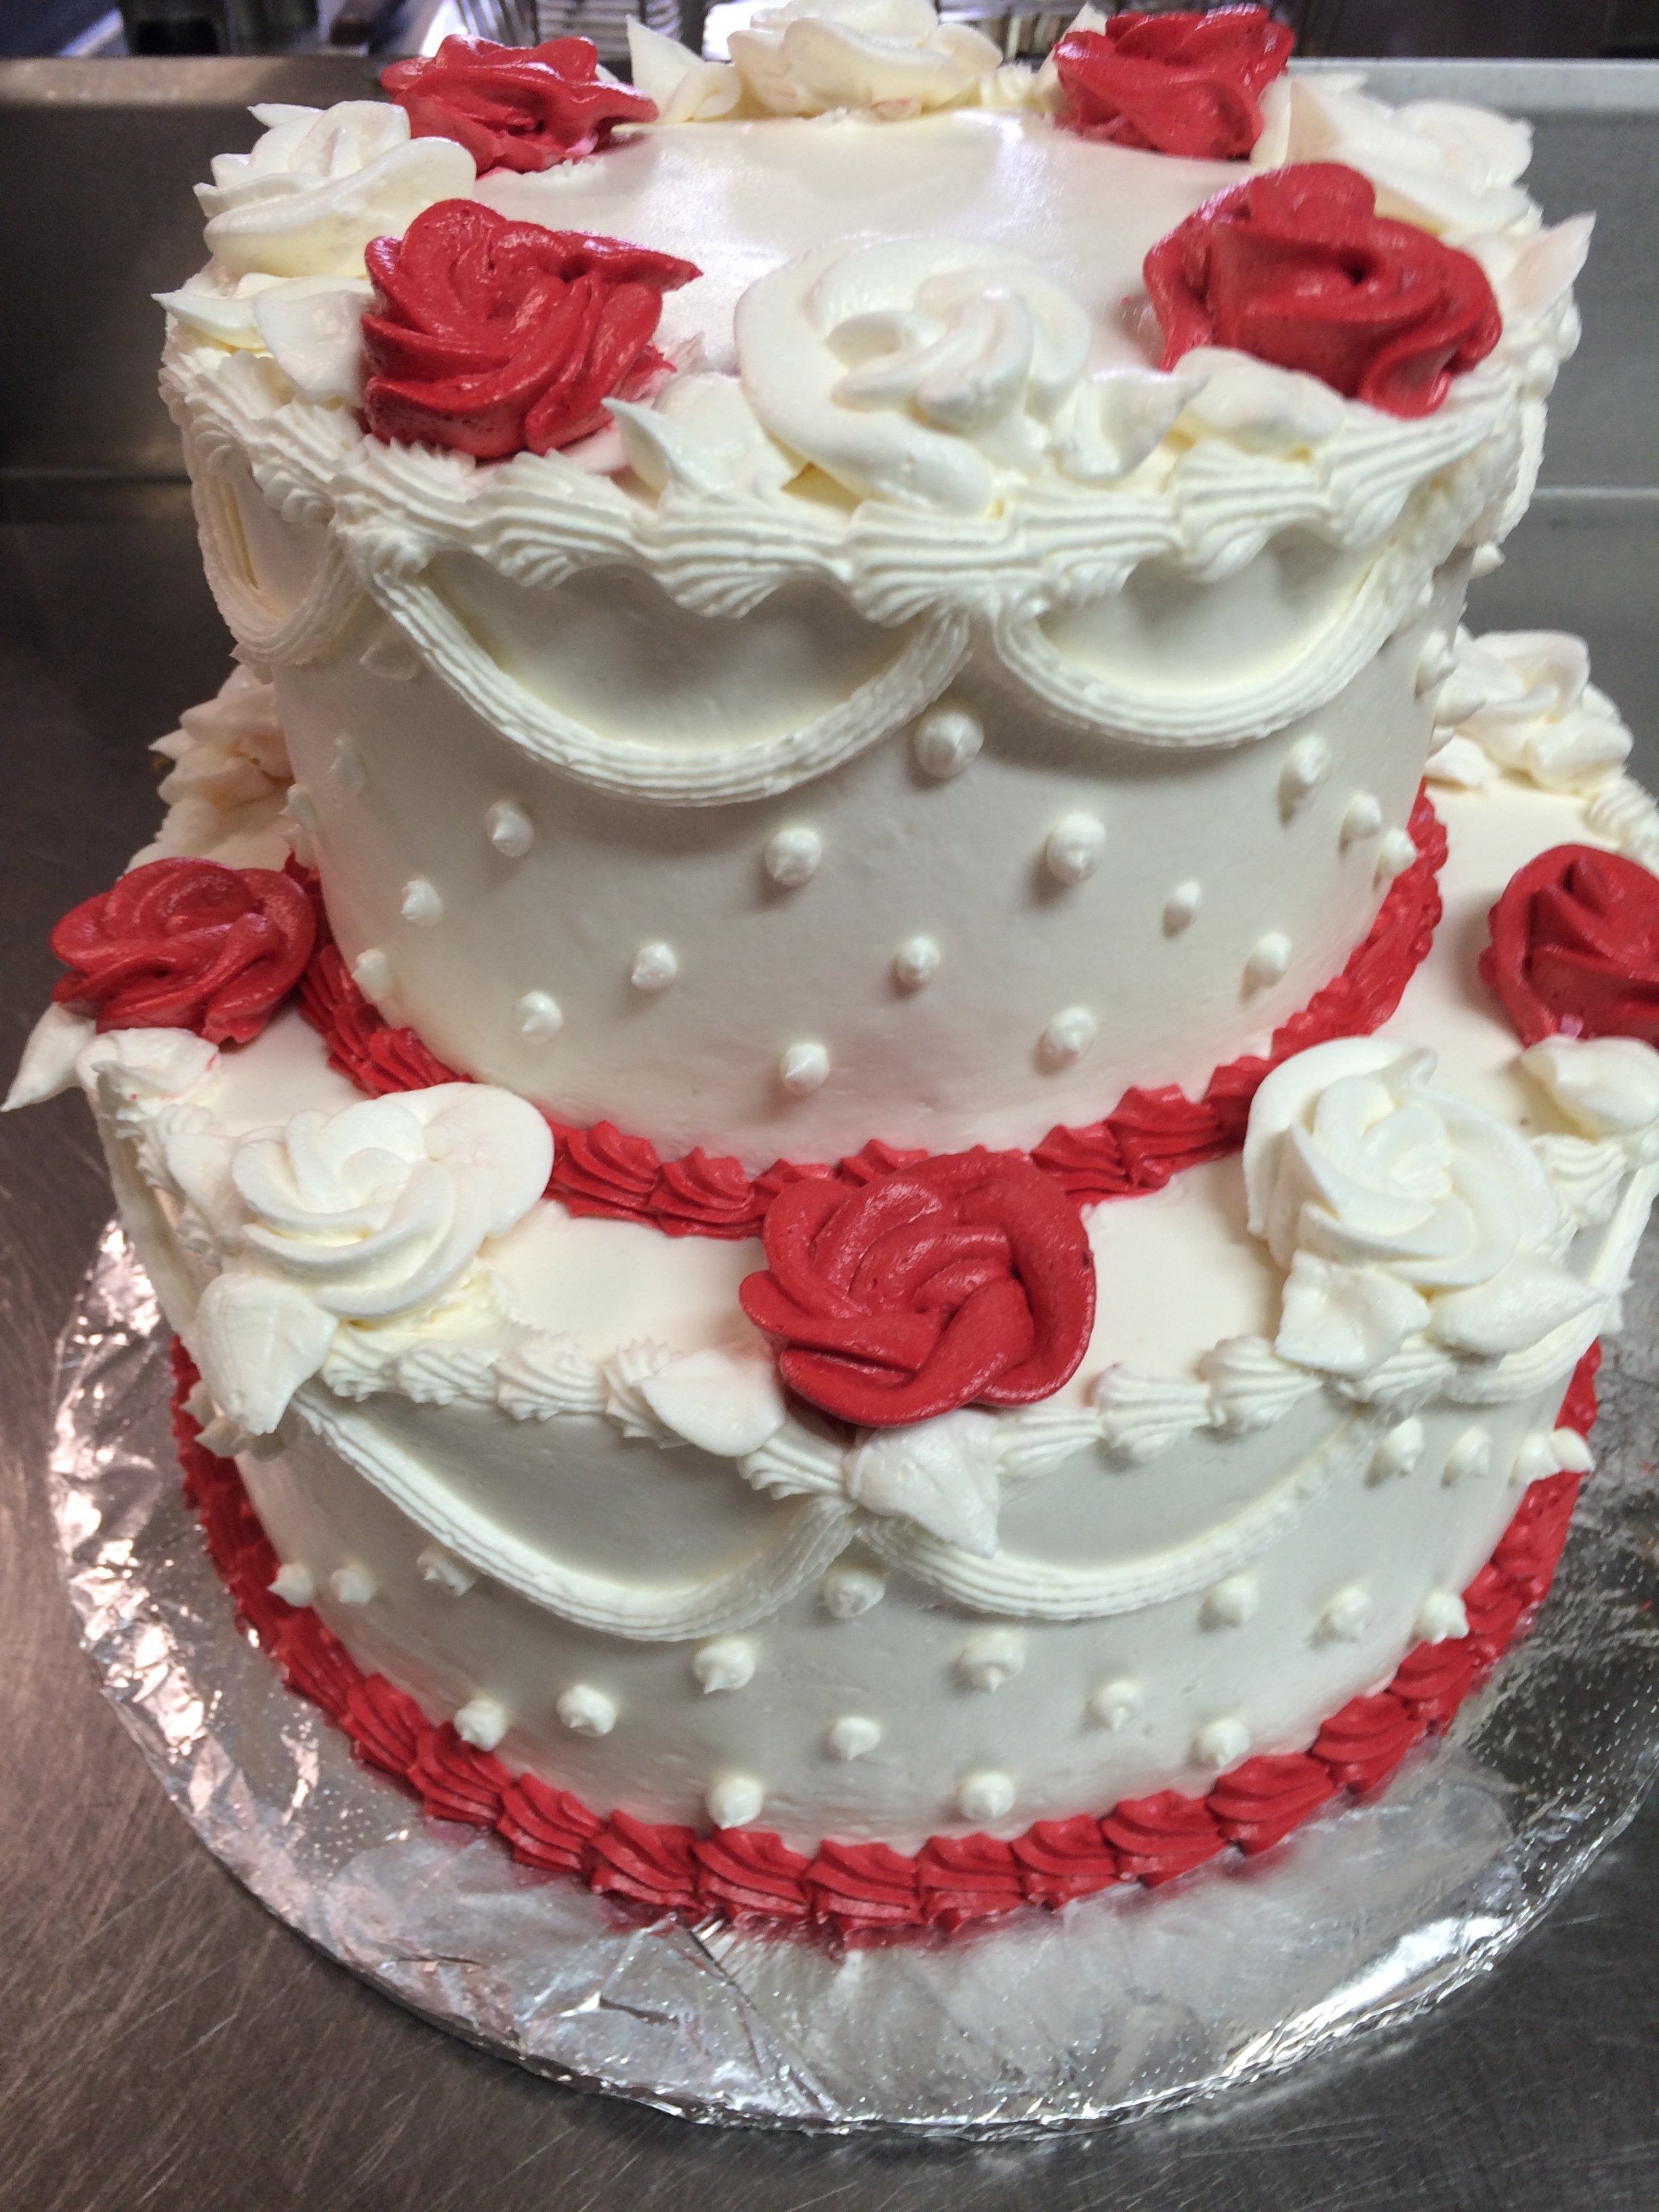 Wedding Cake Red Flowers.JPG